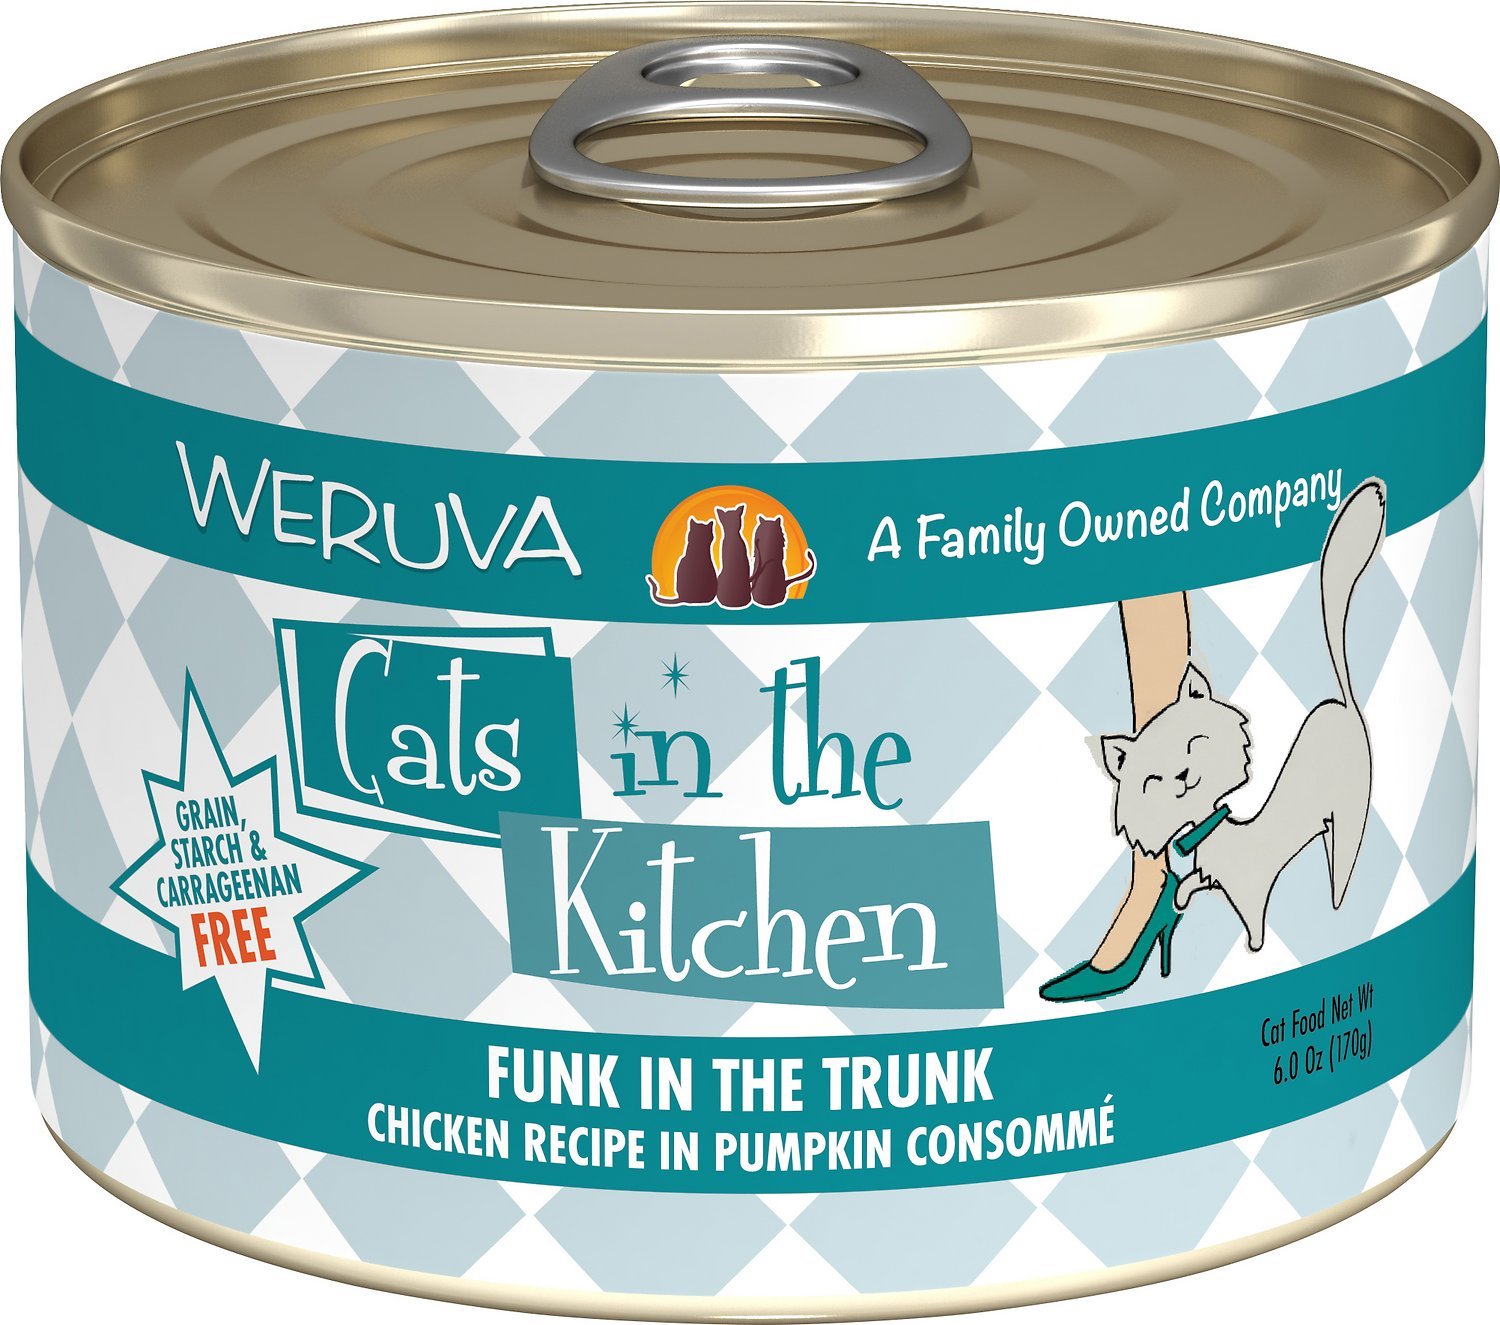 Weruva Cats in the Kitchen Funk In The Trunk Chicken in Pumpkin Consomme Grain-Free Wet Cat Food, 6-oz